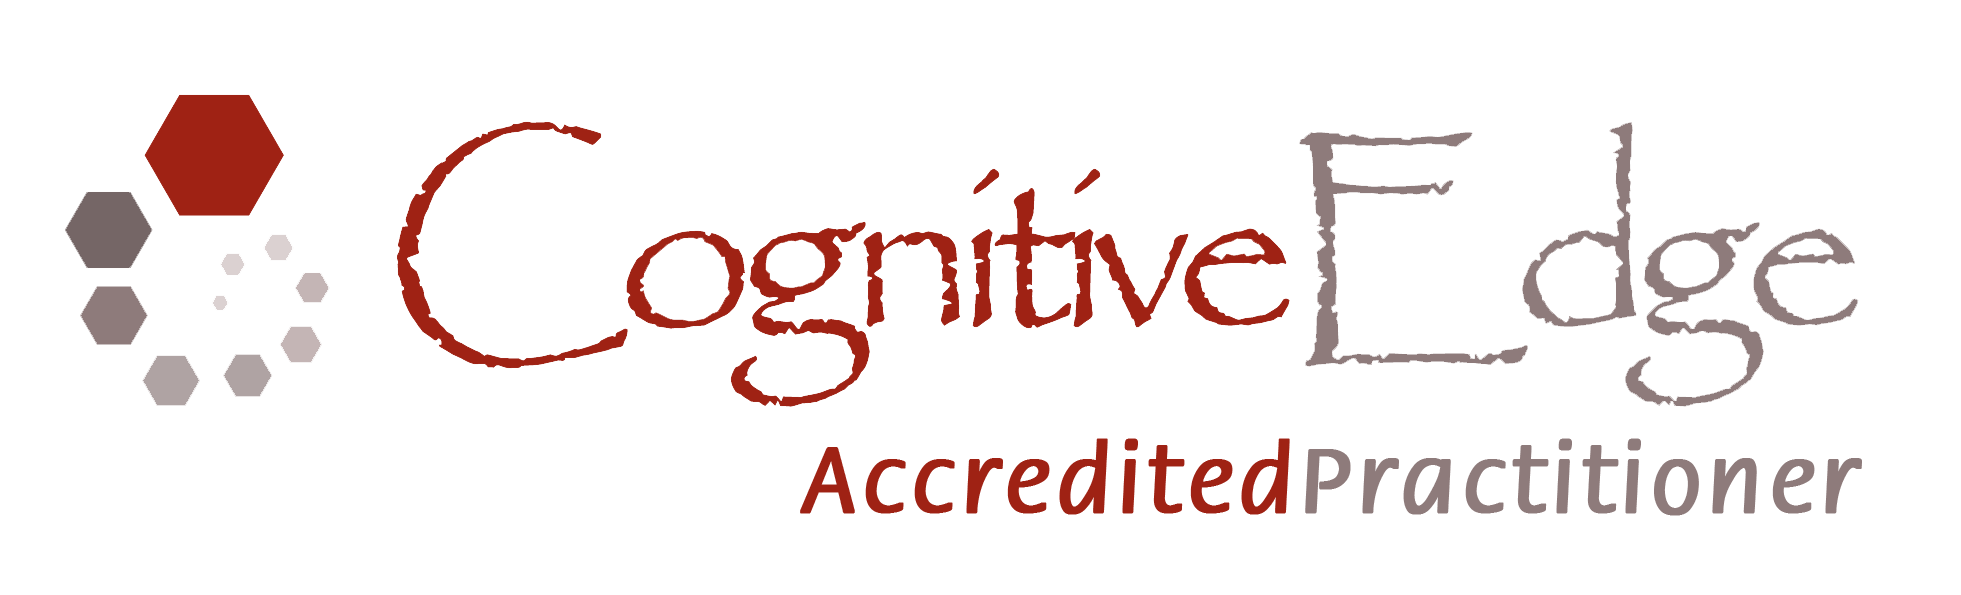 Accredited-Practitioner-Logo